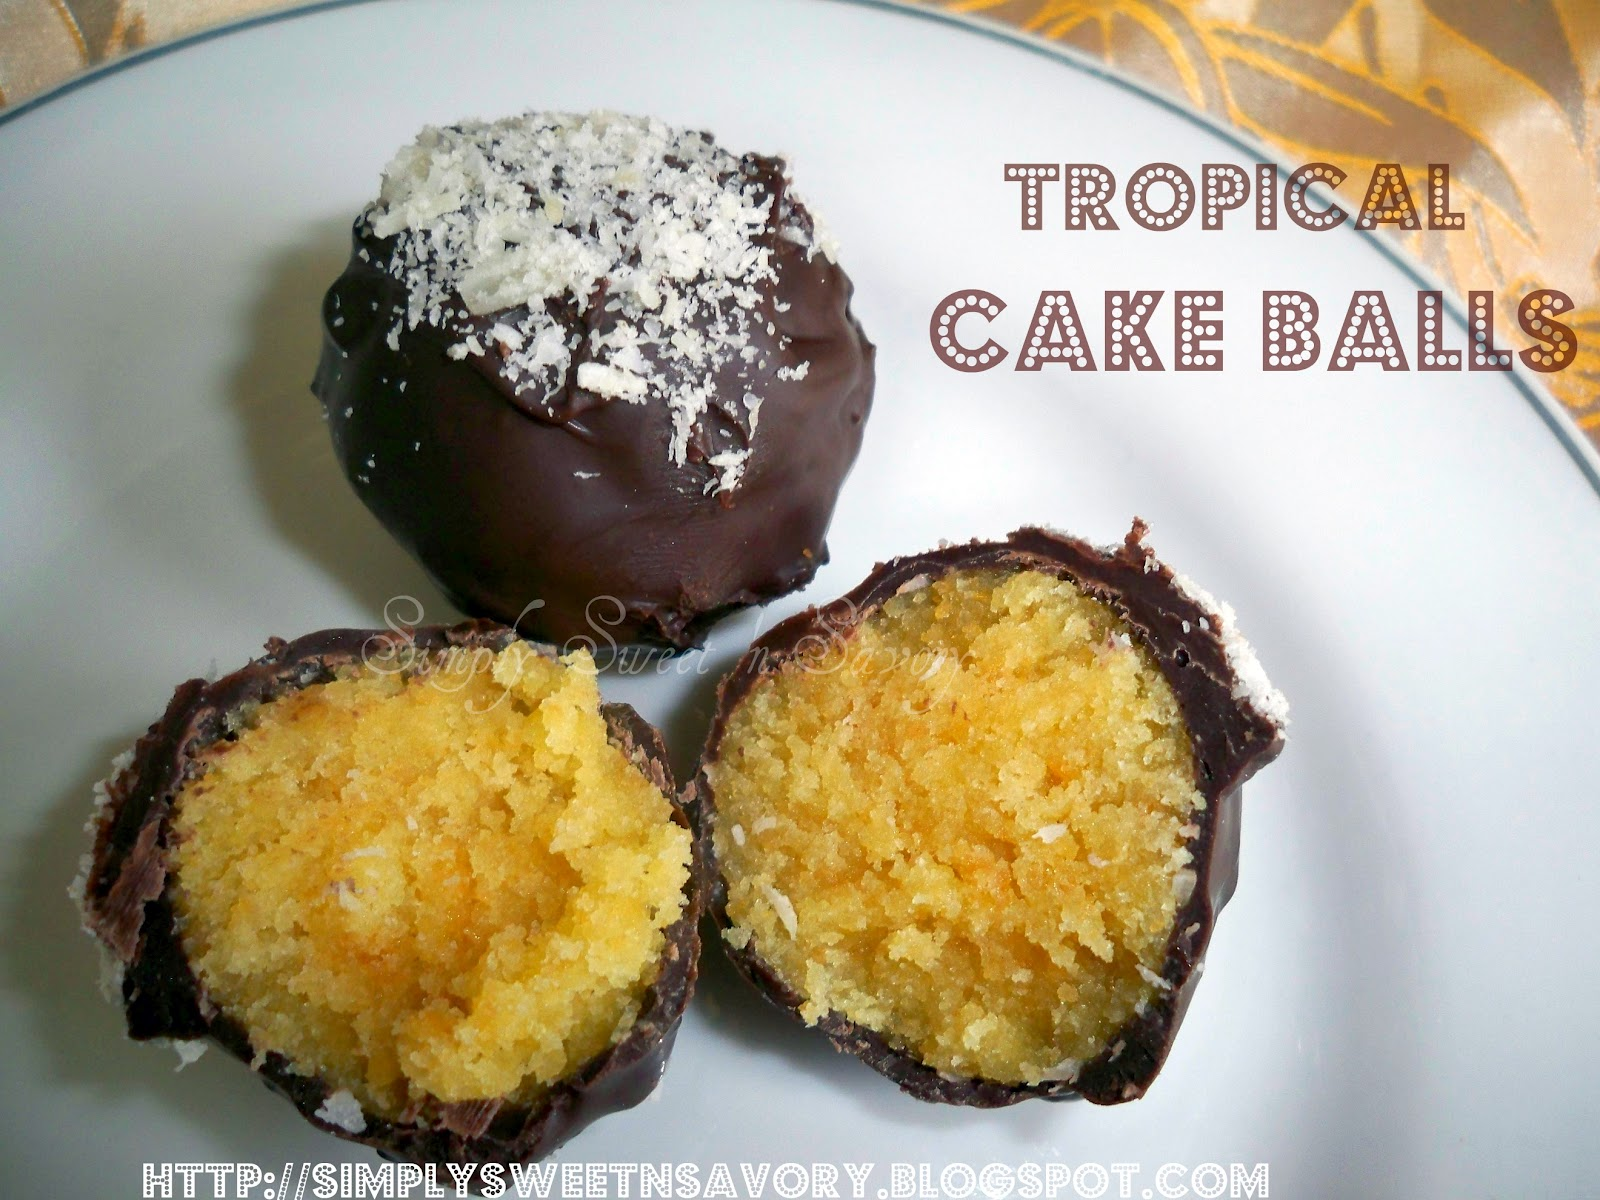 Simply Sweet 'n Savory: Tropical Cake Balls; Tagged & Award